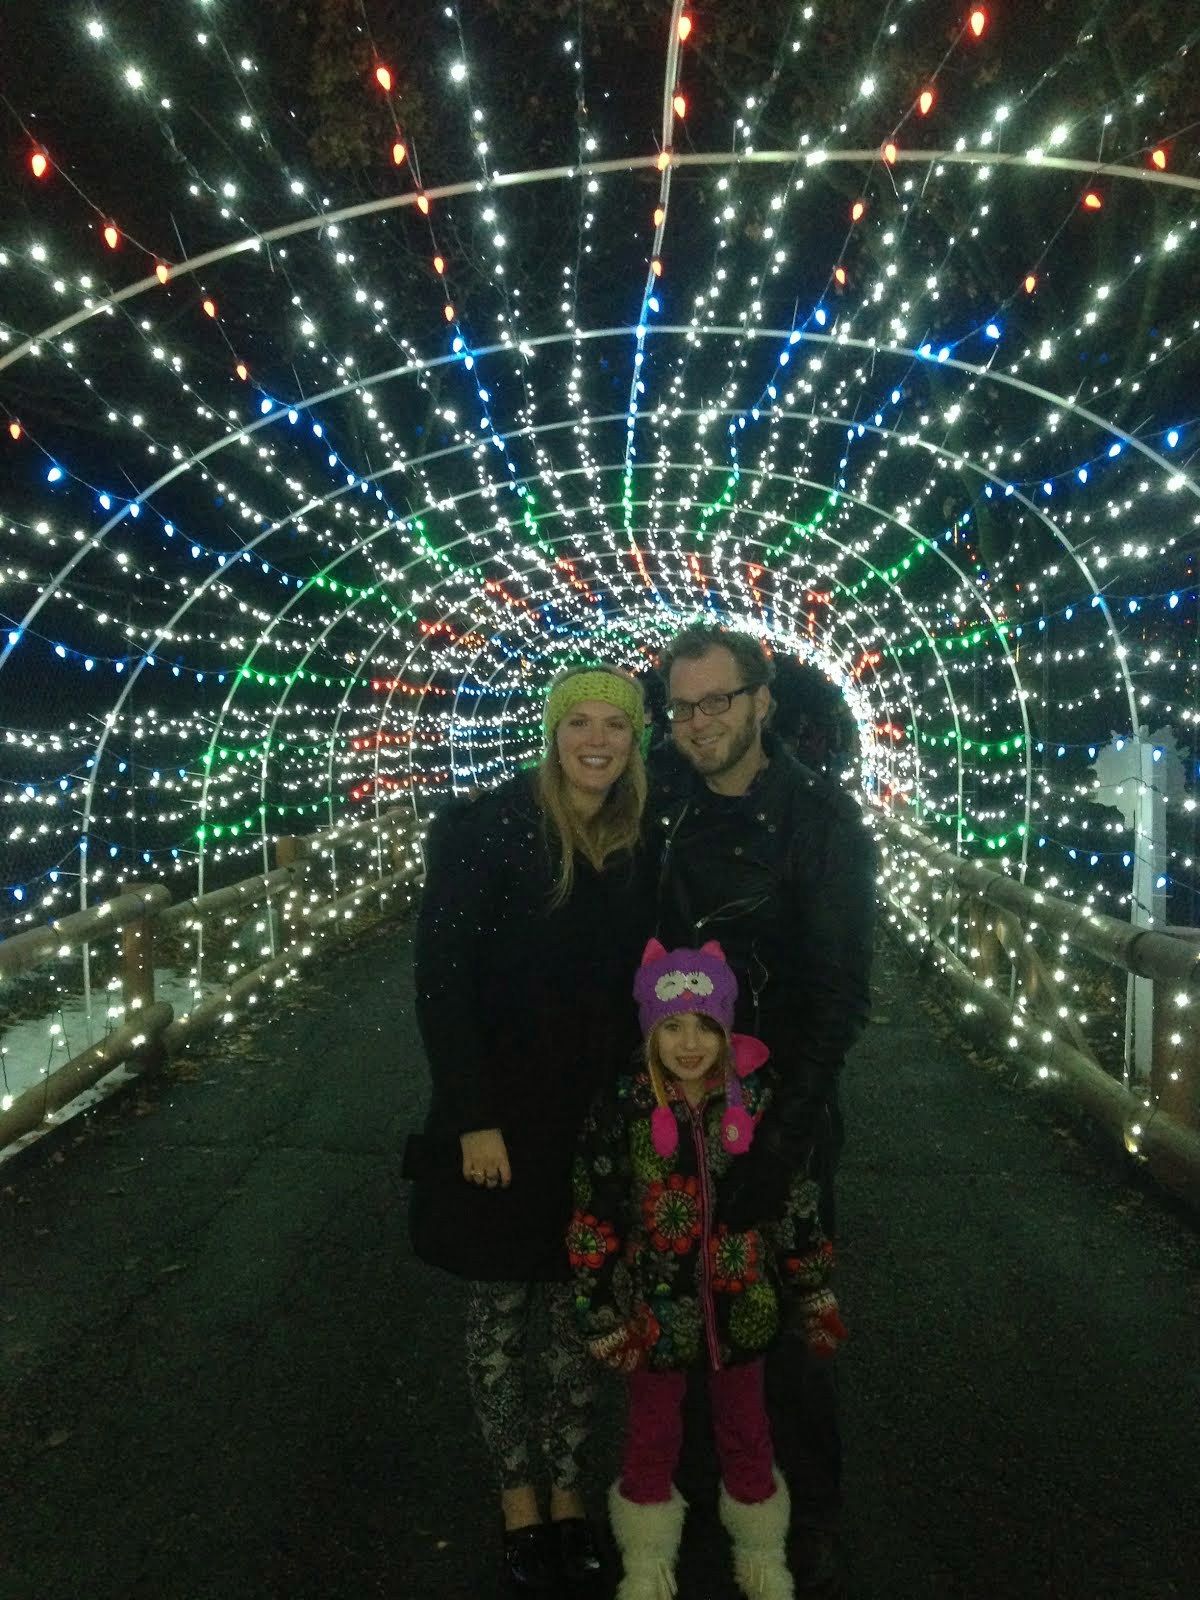 Zoo winter lights LV PA